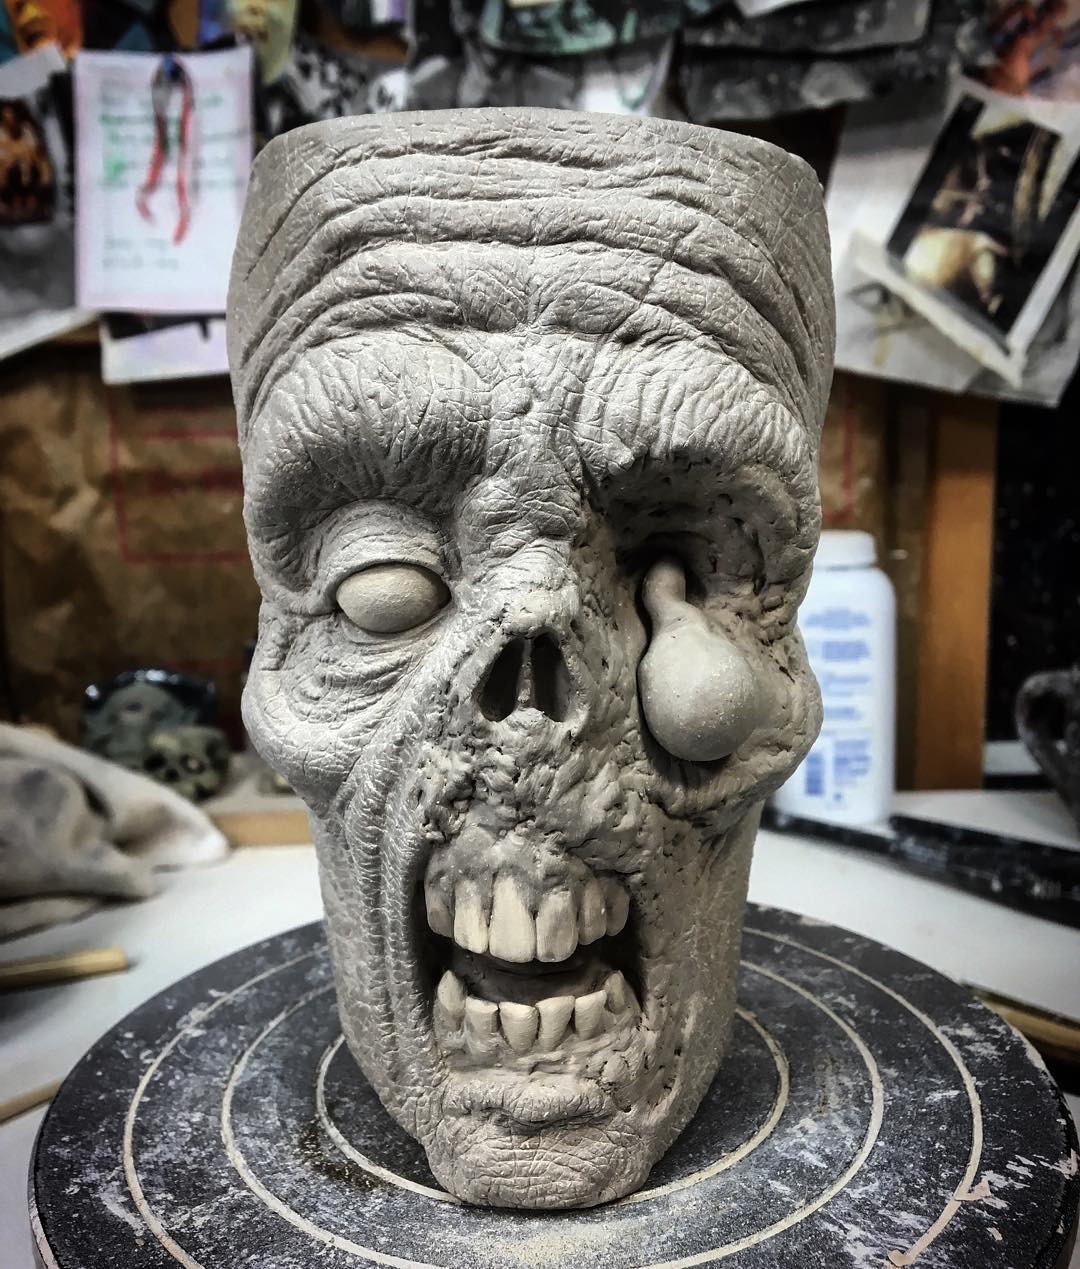 horror-zombie-mug-pottery-slow-joe-kevin-turkey-merck-20